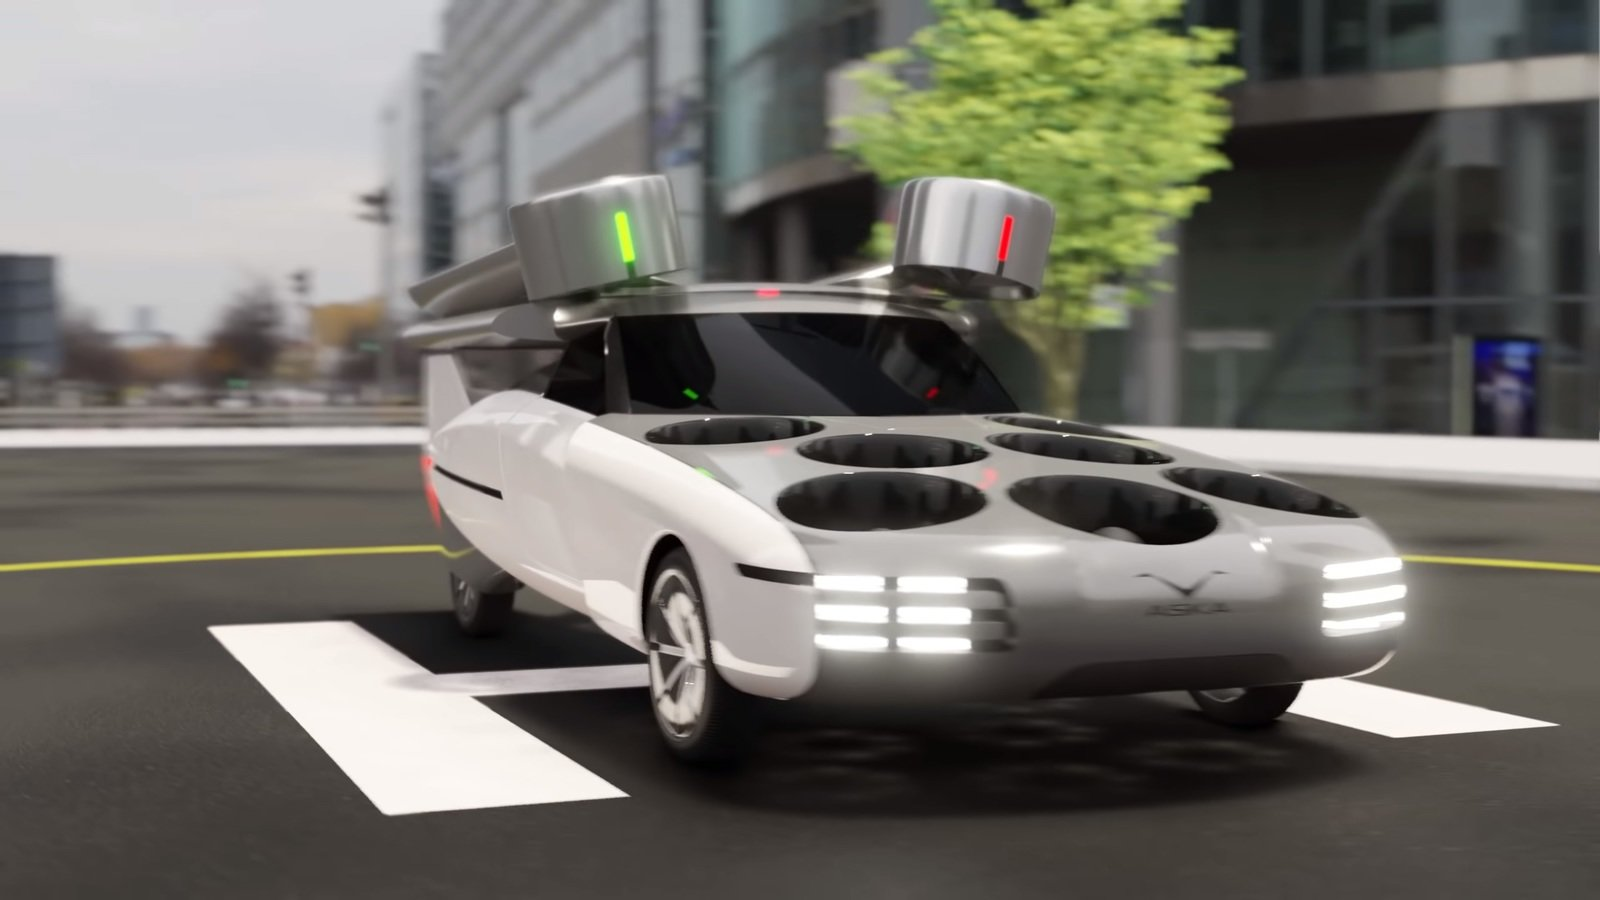 The Aska Hybrid Is A Unique Take On The Flying Car | Top Speed